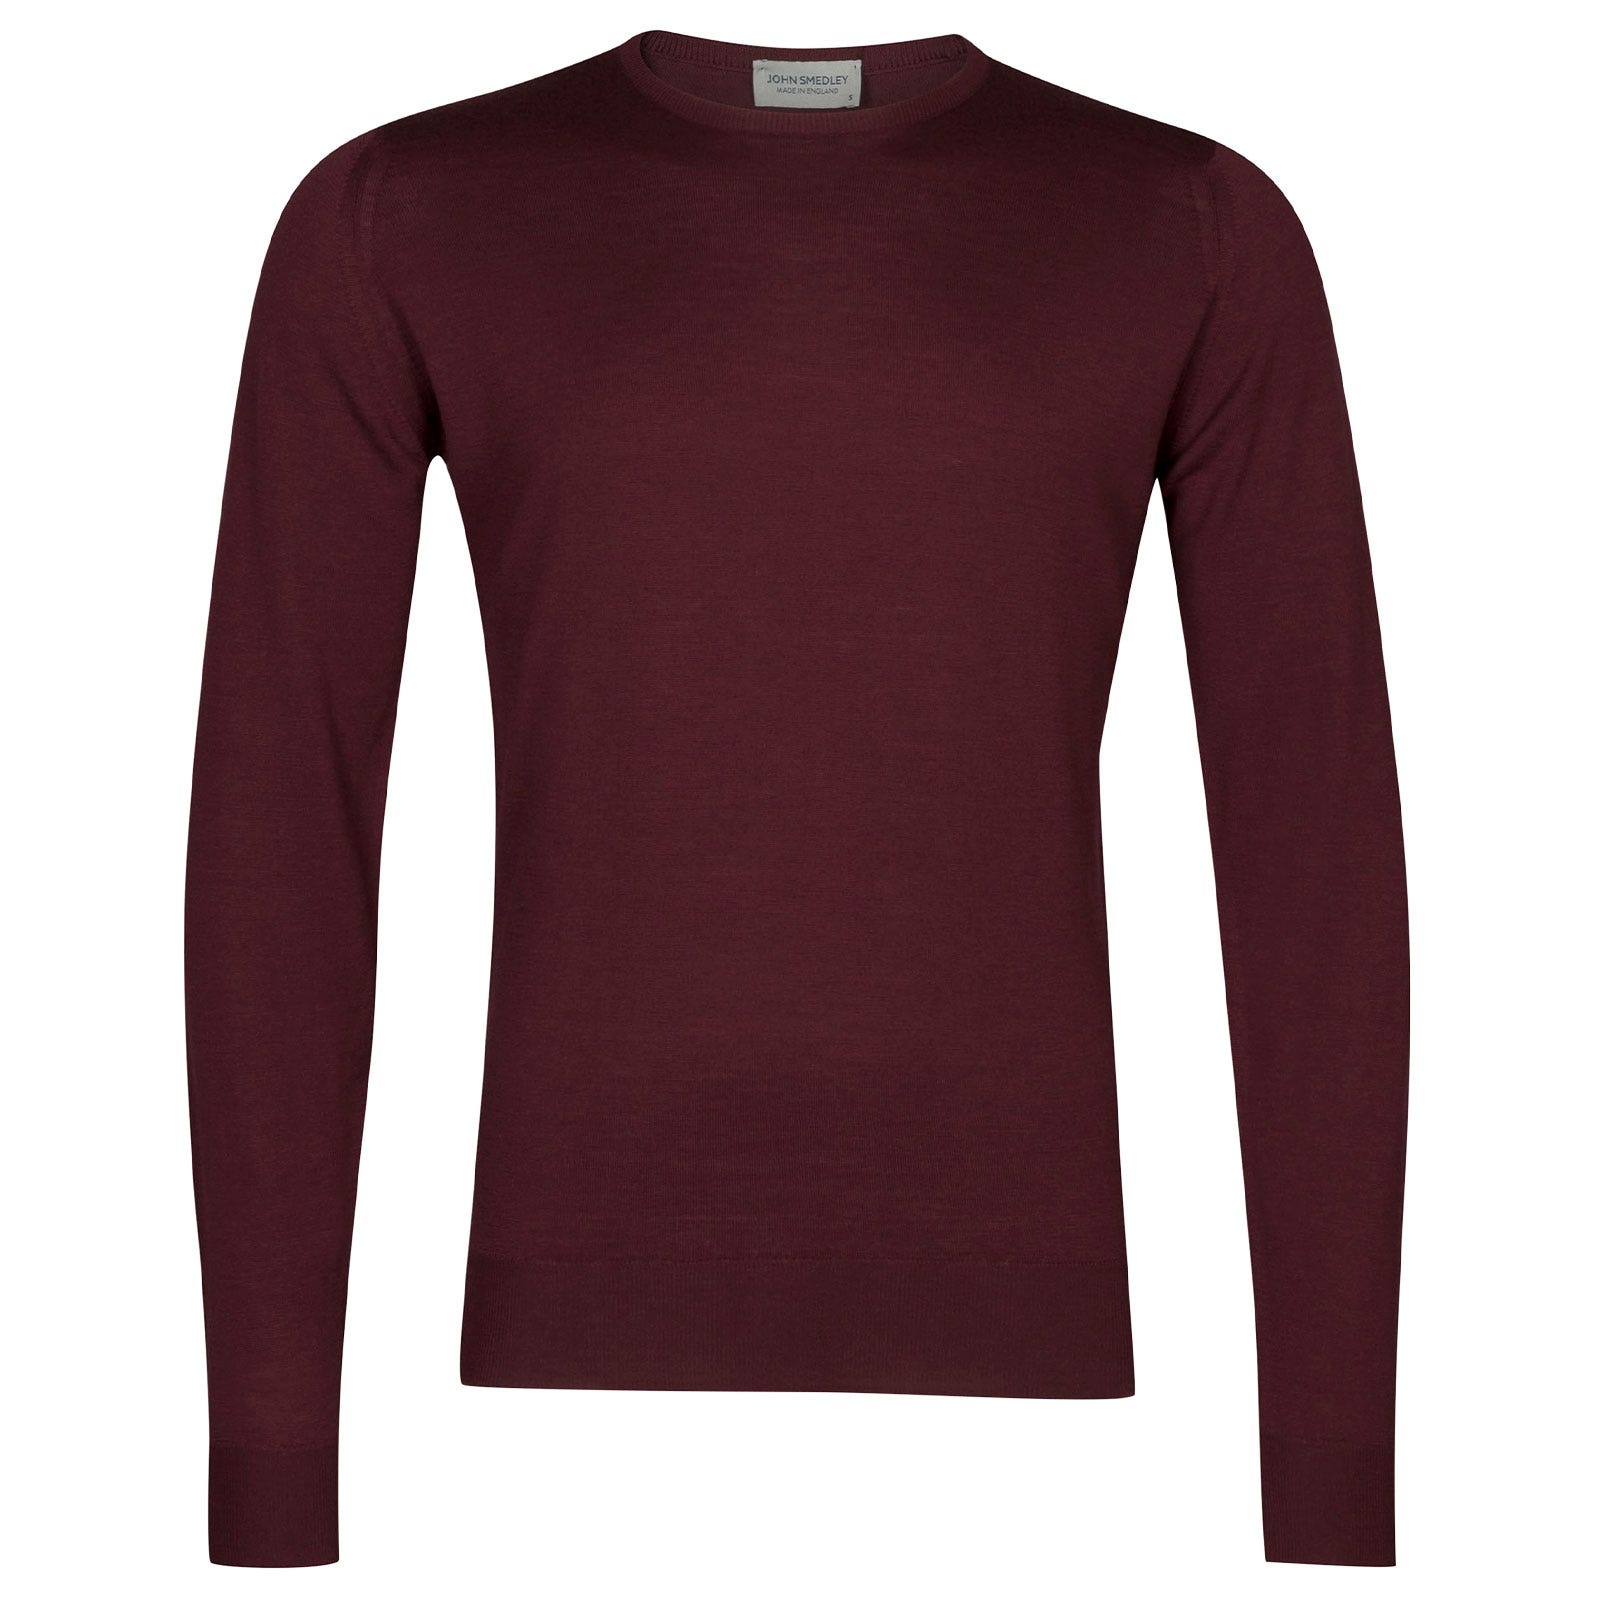 John Smedley Lundy Merino Wool Pullover in Bordeaux-M